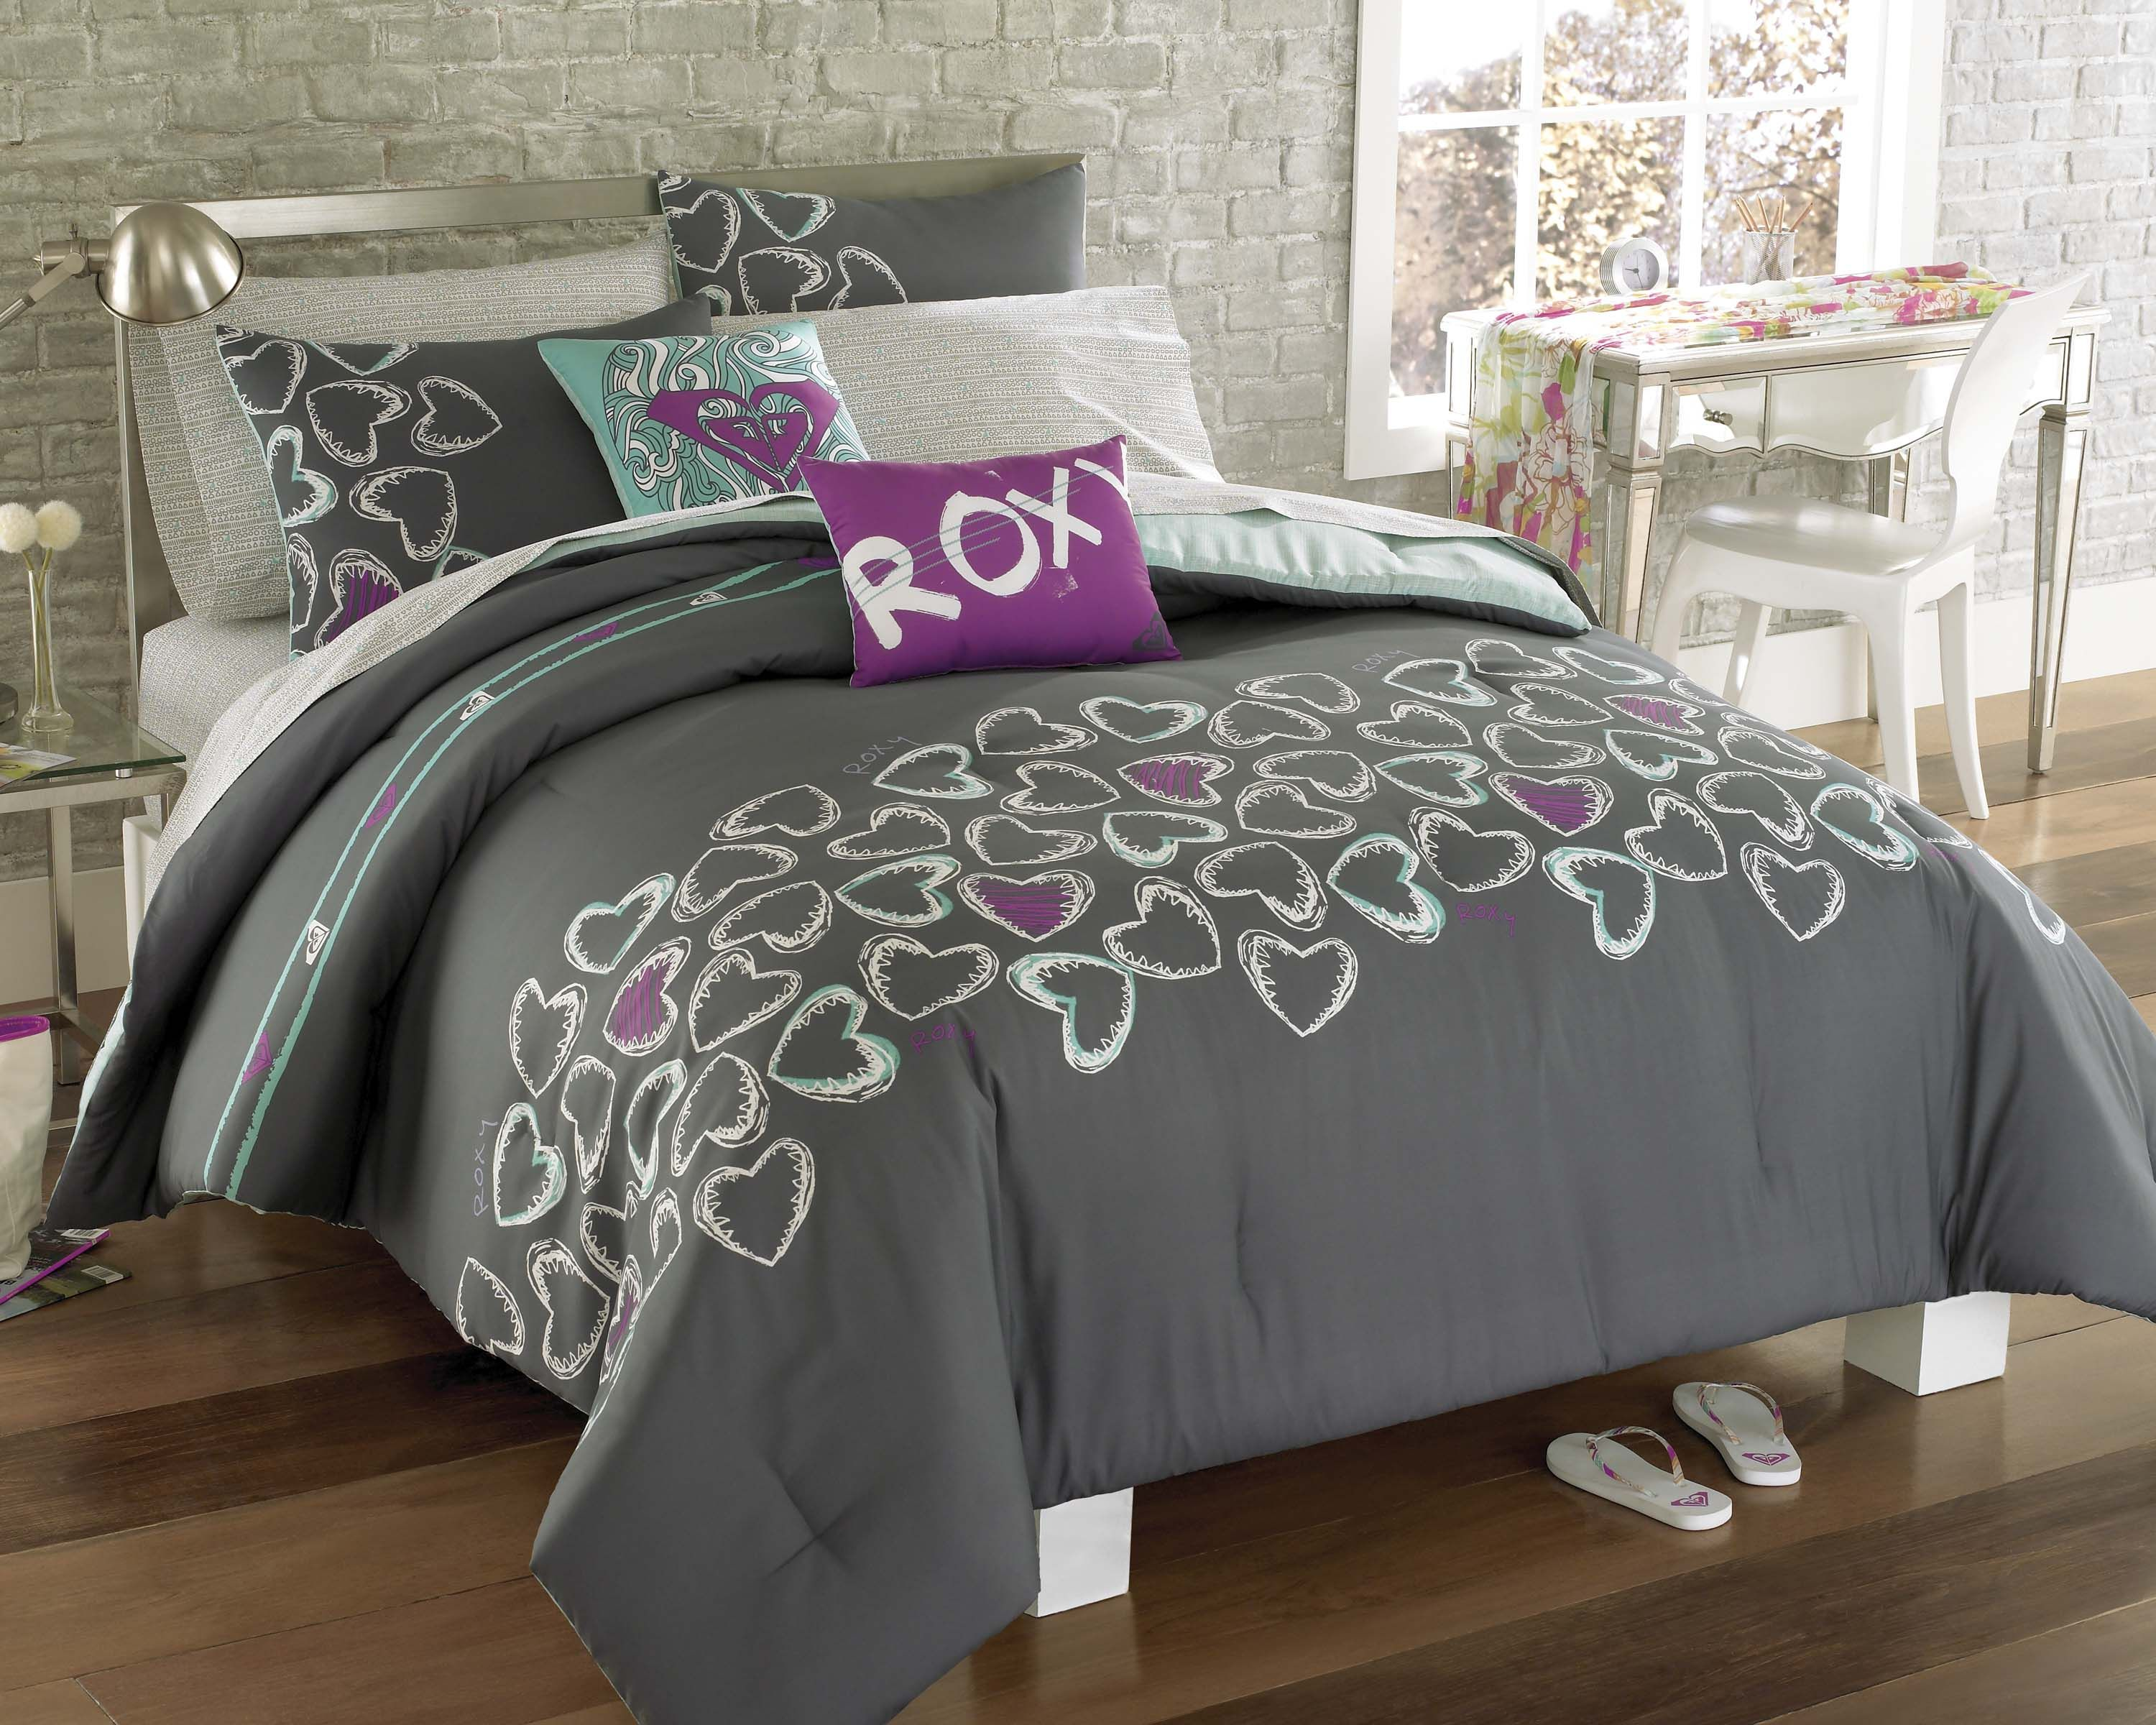 Bedroom Sets For Women full bedding sets for women | roxy heart and soul full bed in a